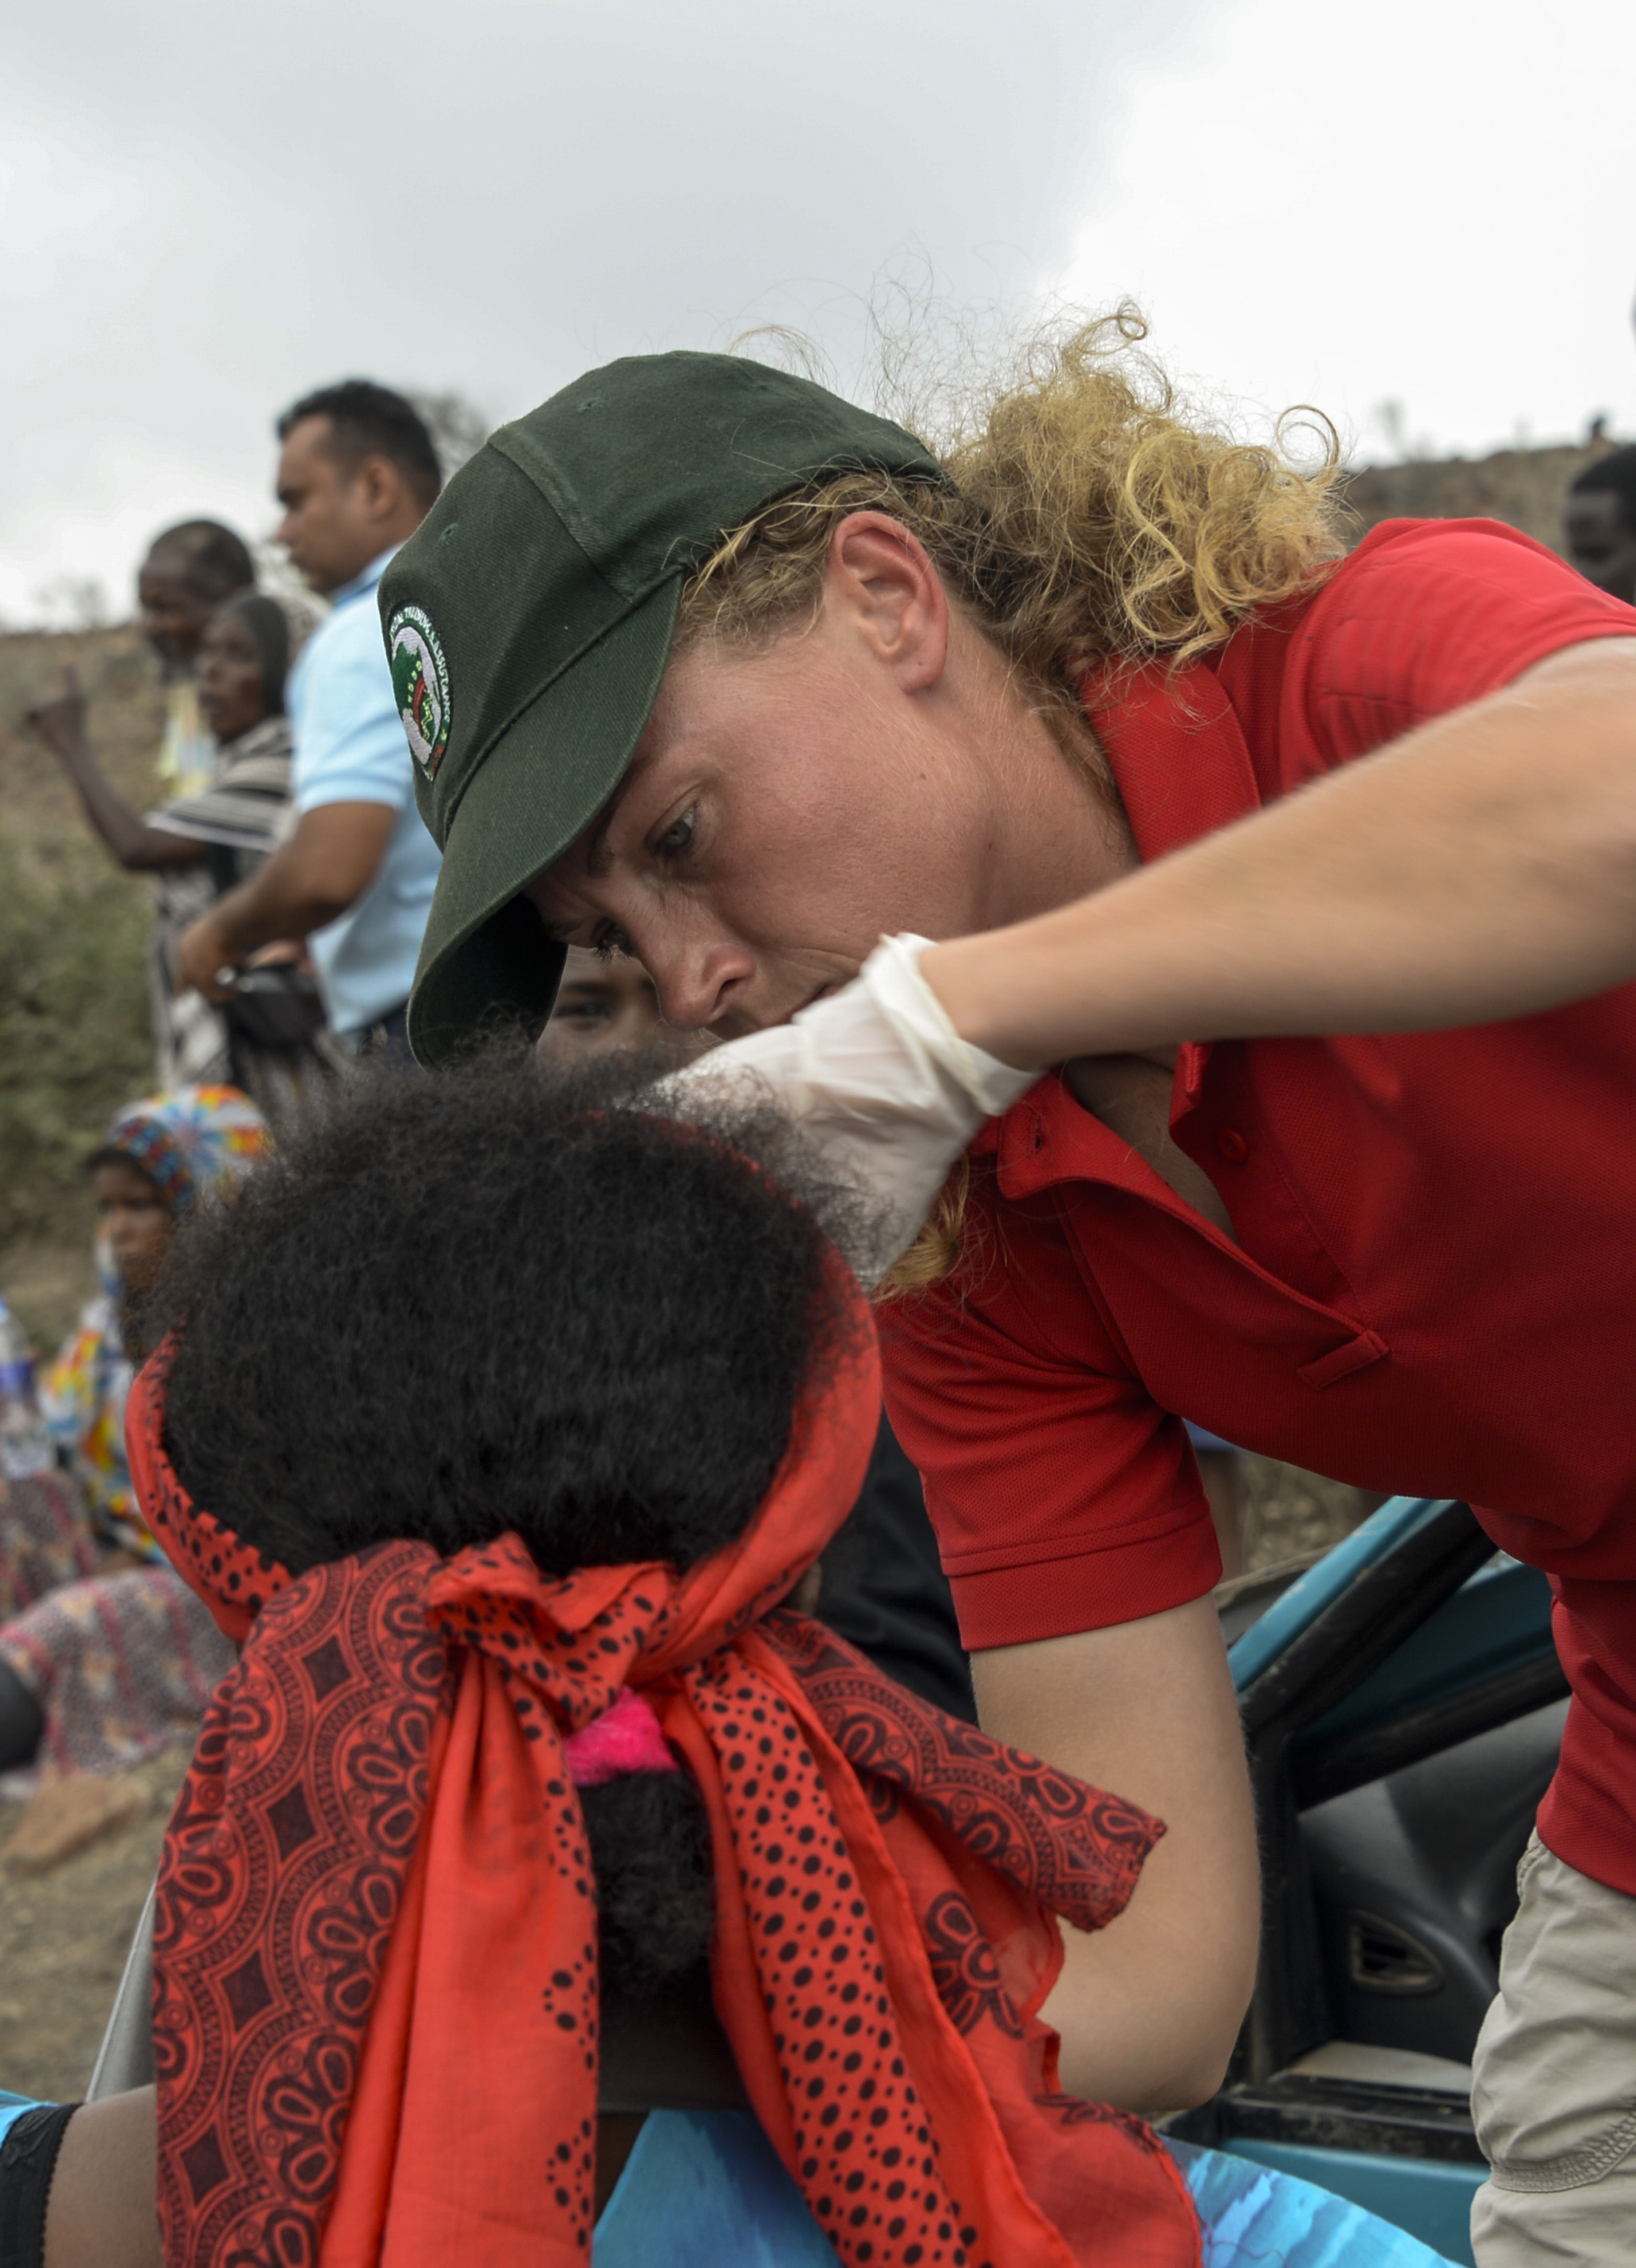 U.S. Army Sgt. Sarah DeArcy, 411th Civil Affairs Battalion medic, administers first aid to an individual involved in a vehicle accident south of We'a Djibouti, March 28, 2017. The actions of the U.S. service members resulted in the stabilization of those injured until local medical officials arrived on scene, increasing their chances of survival. (U.S. Air National Guard photo by Staff Sgt. Christian Jadot)